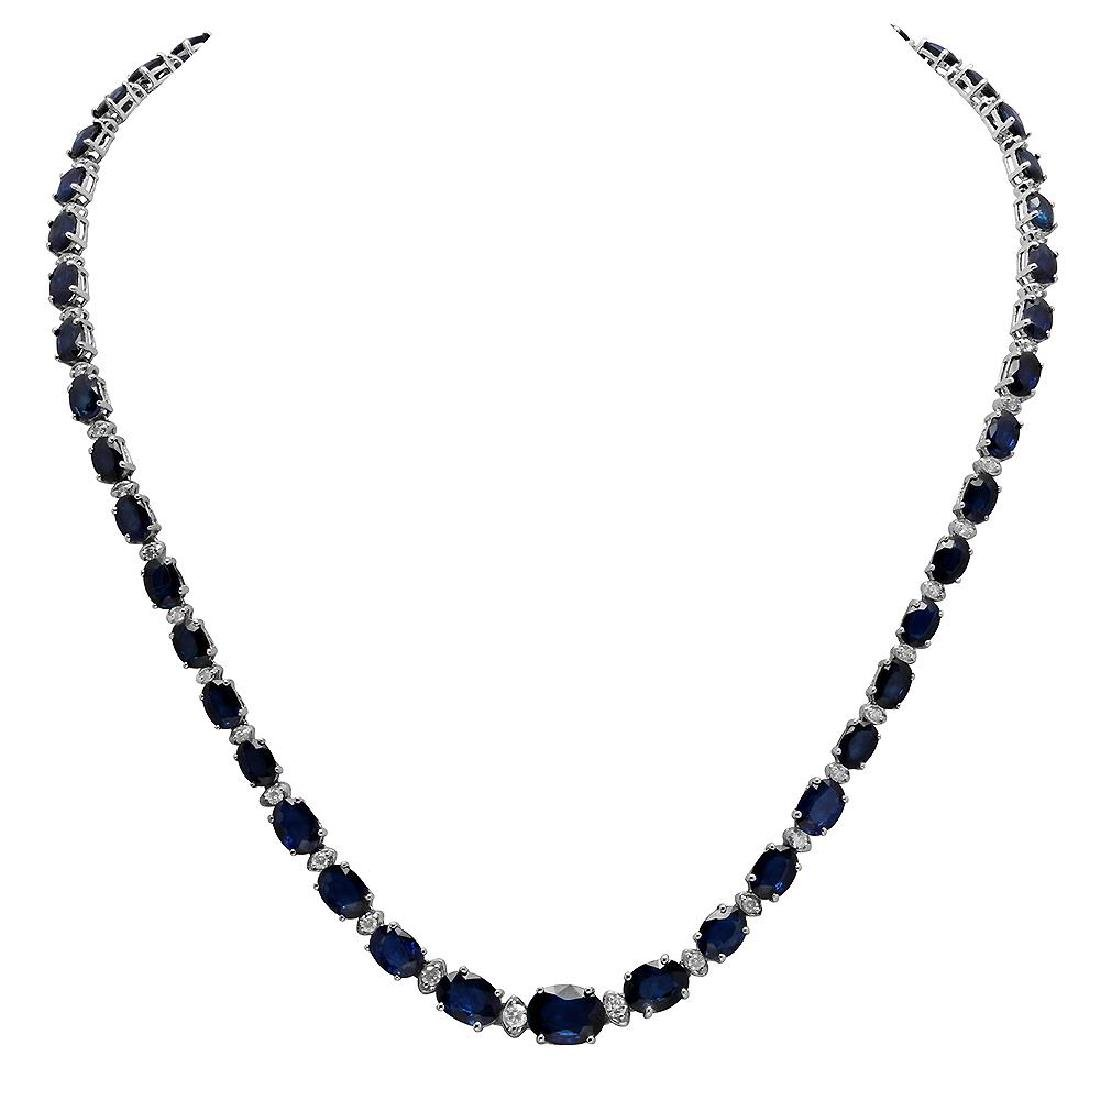 14k White Gold 34.60ct Sapphire 1.78ct Diamond Necklace